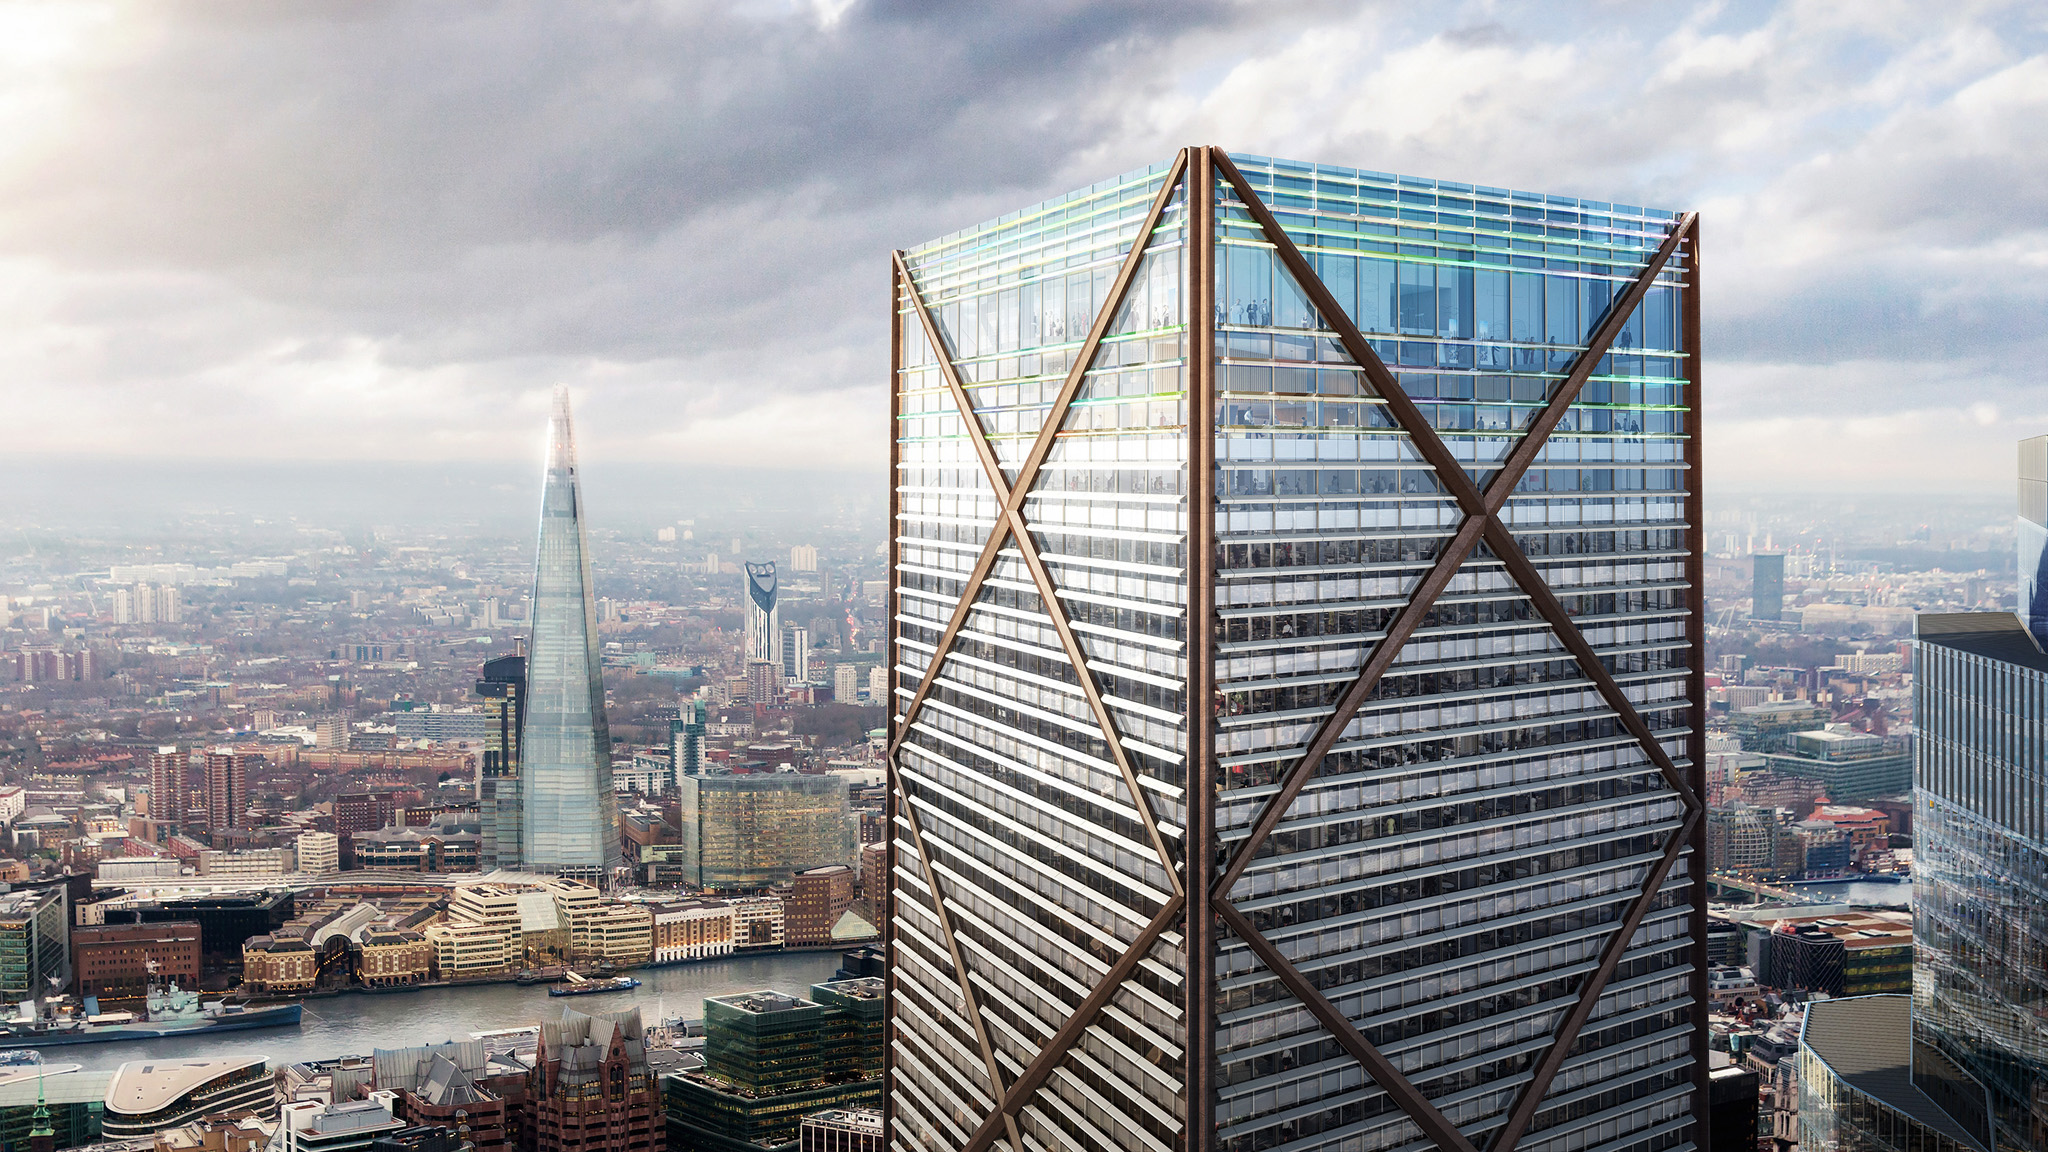 They Say Theyre Building Worlds Tallest >> City Of London S Tallest Building Rises Above Corporate Interests